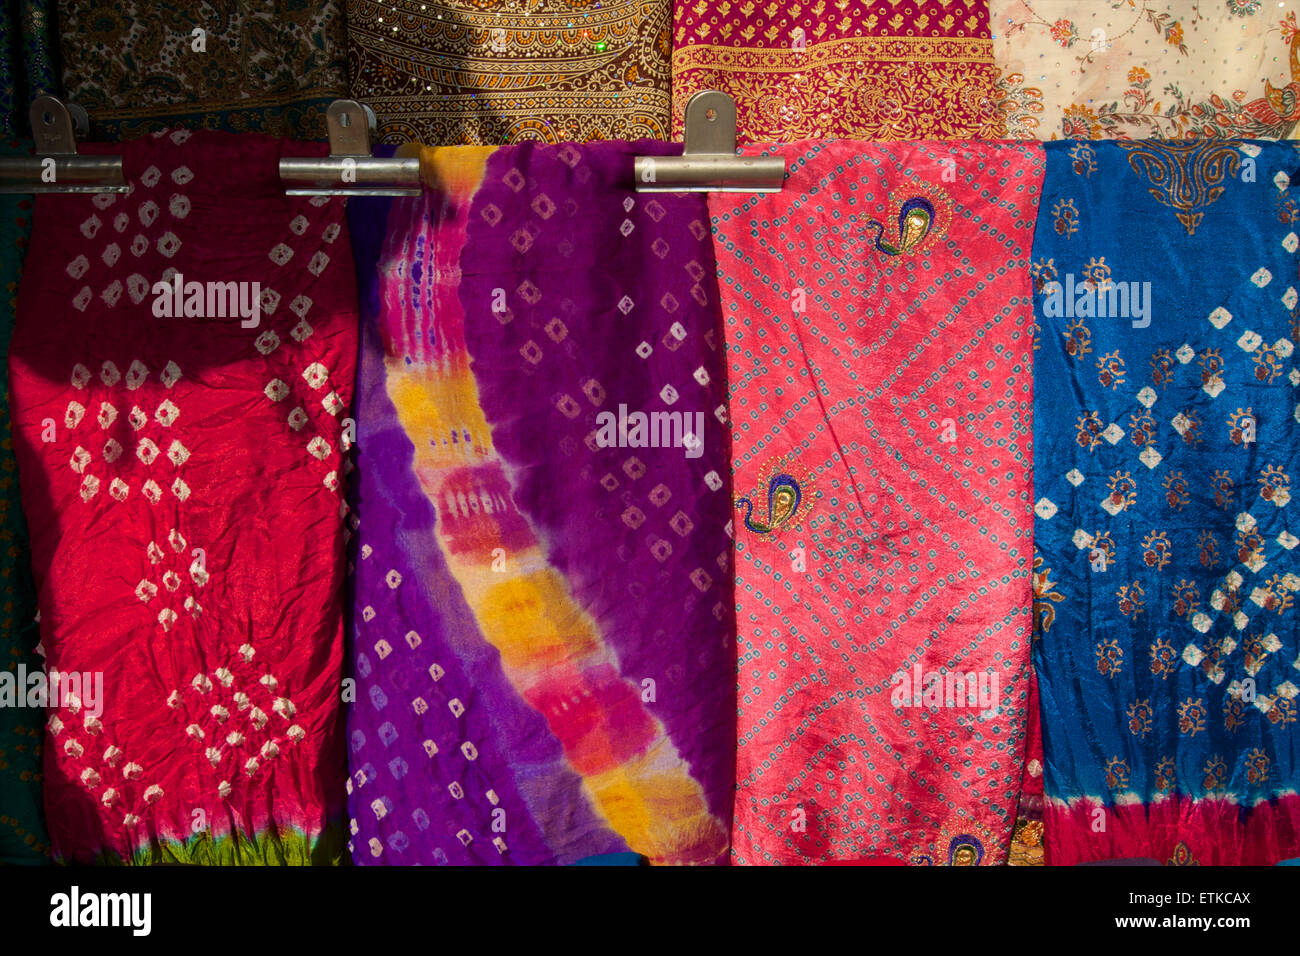 Colourful Indian fabrics for sale in Jaipur,   Rajasthan, India - Stock Image